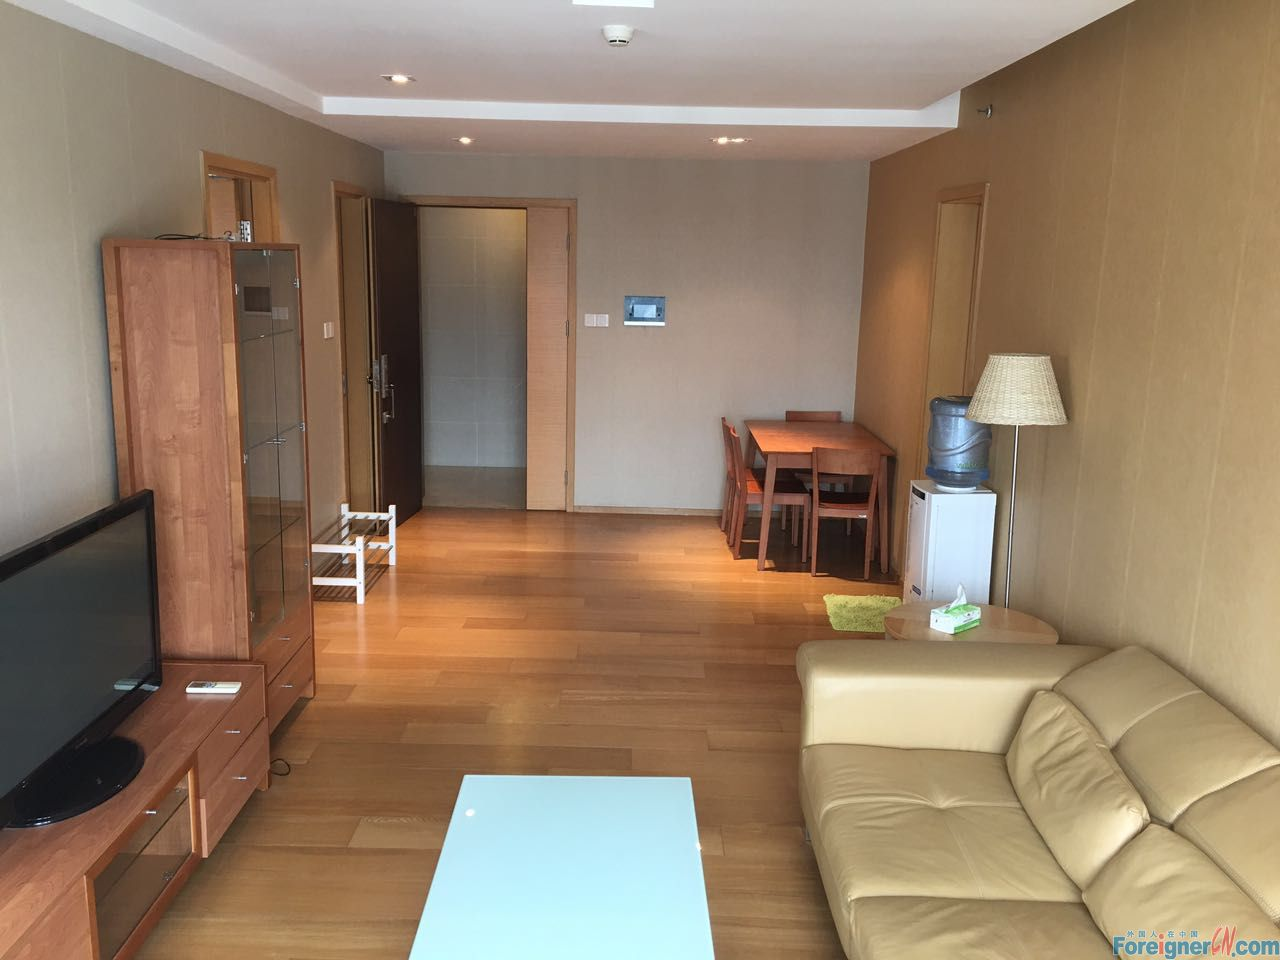 1BR-apt modern and super new in Starry winking (has keys )